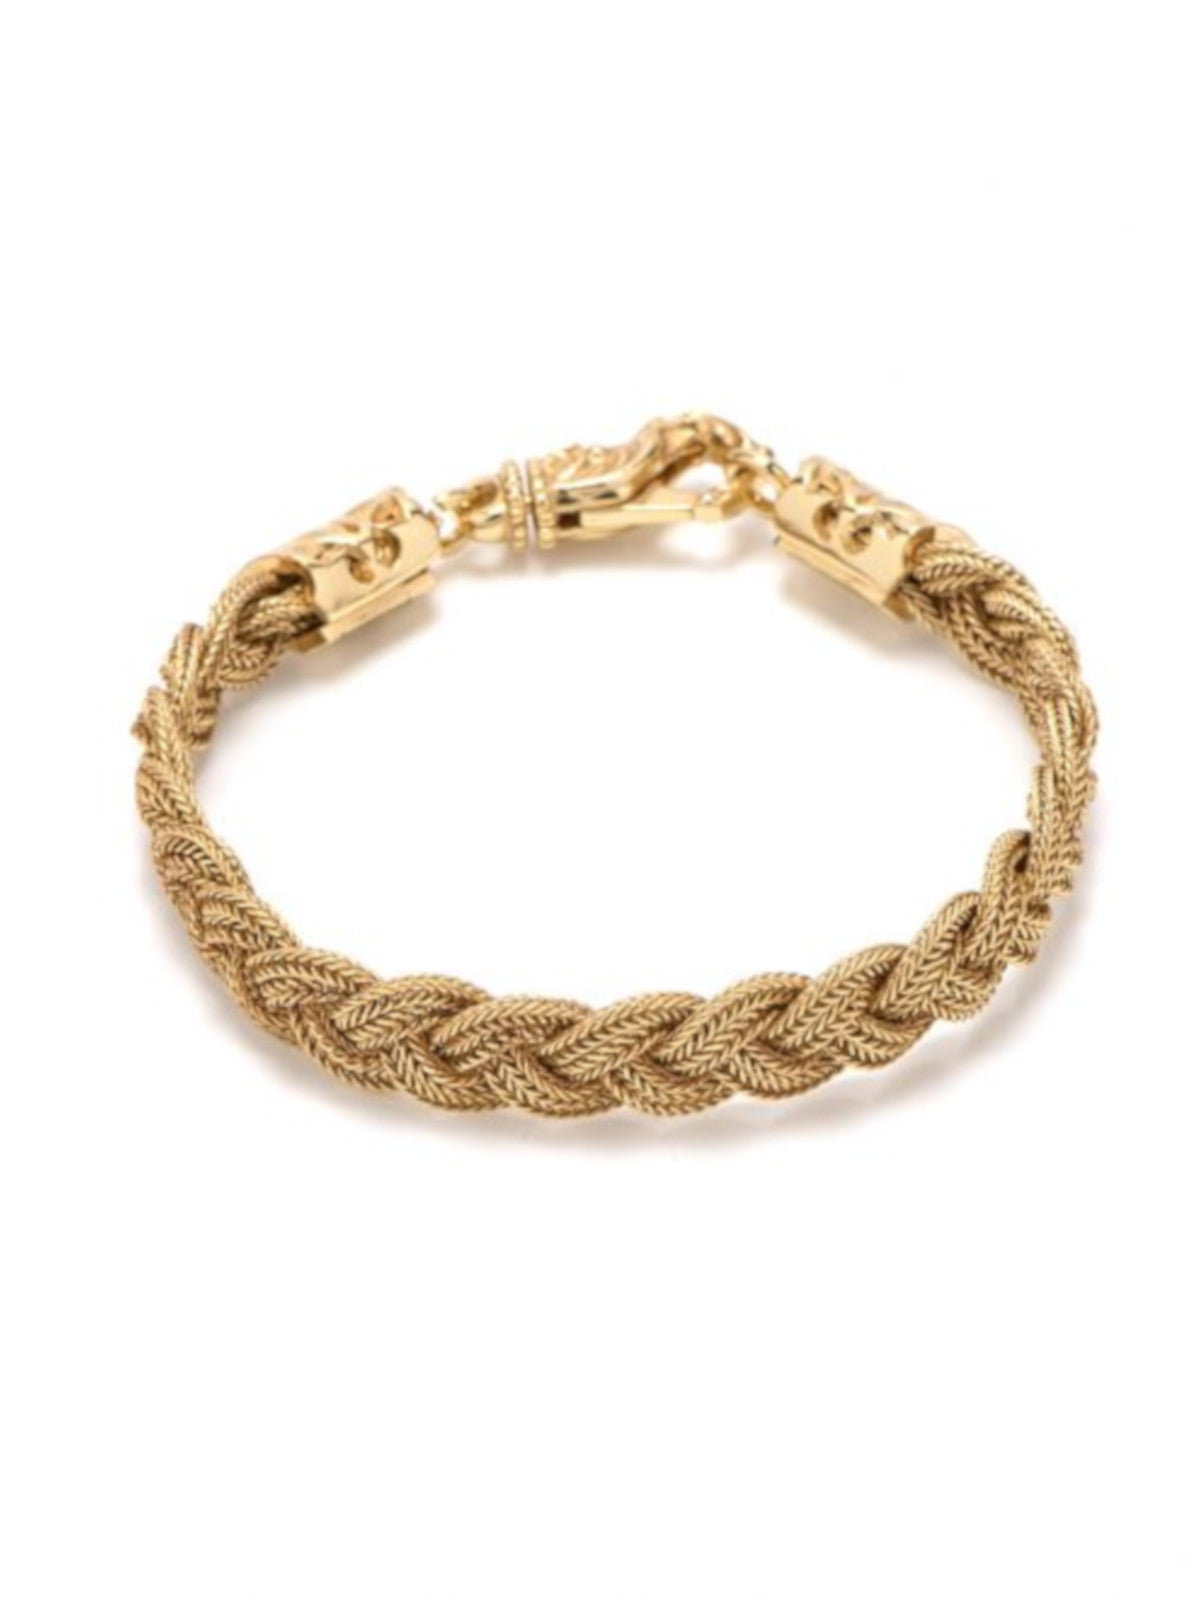 GOLD FLAT BRAIDED BRACELET